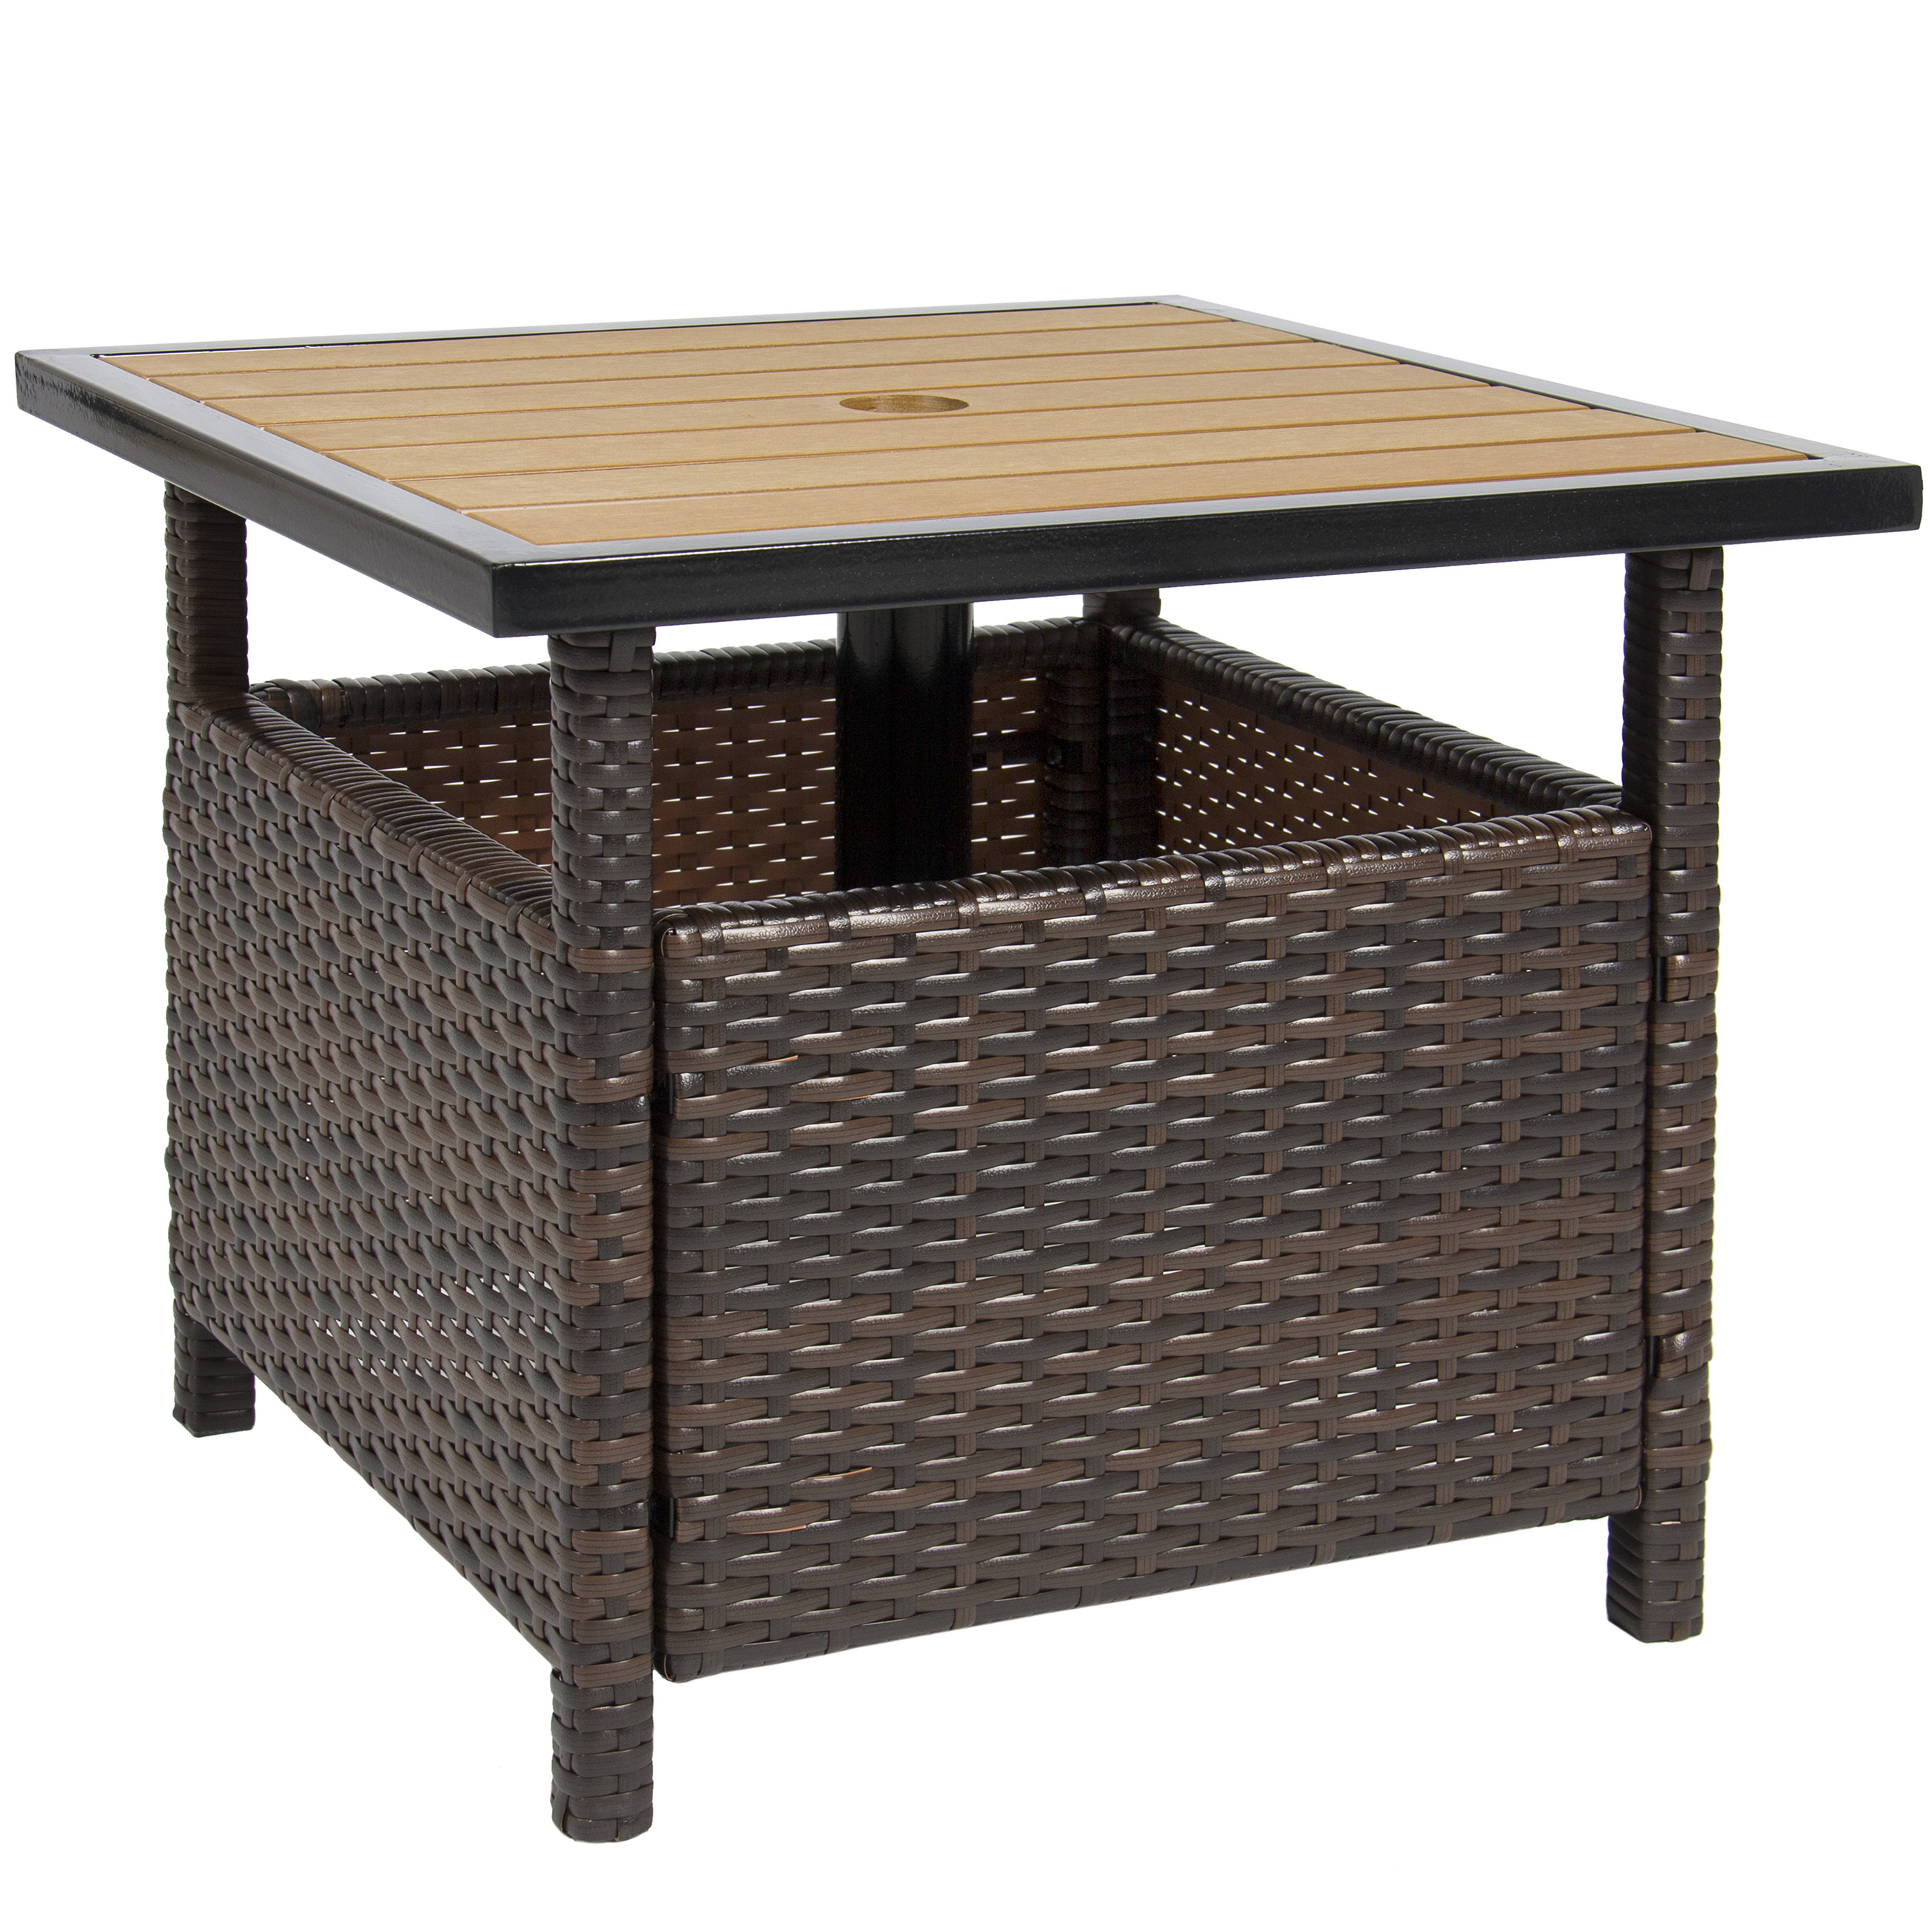 Best Choice Products Wicker Patio Umbrella Stand Table with Umbrella Hole Outdoor Furniture for Garden  sc 1 st  Walmart & Best Choice Products Wicker Patio Umbrella Stand Table with Umbrella ...